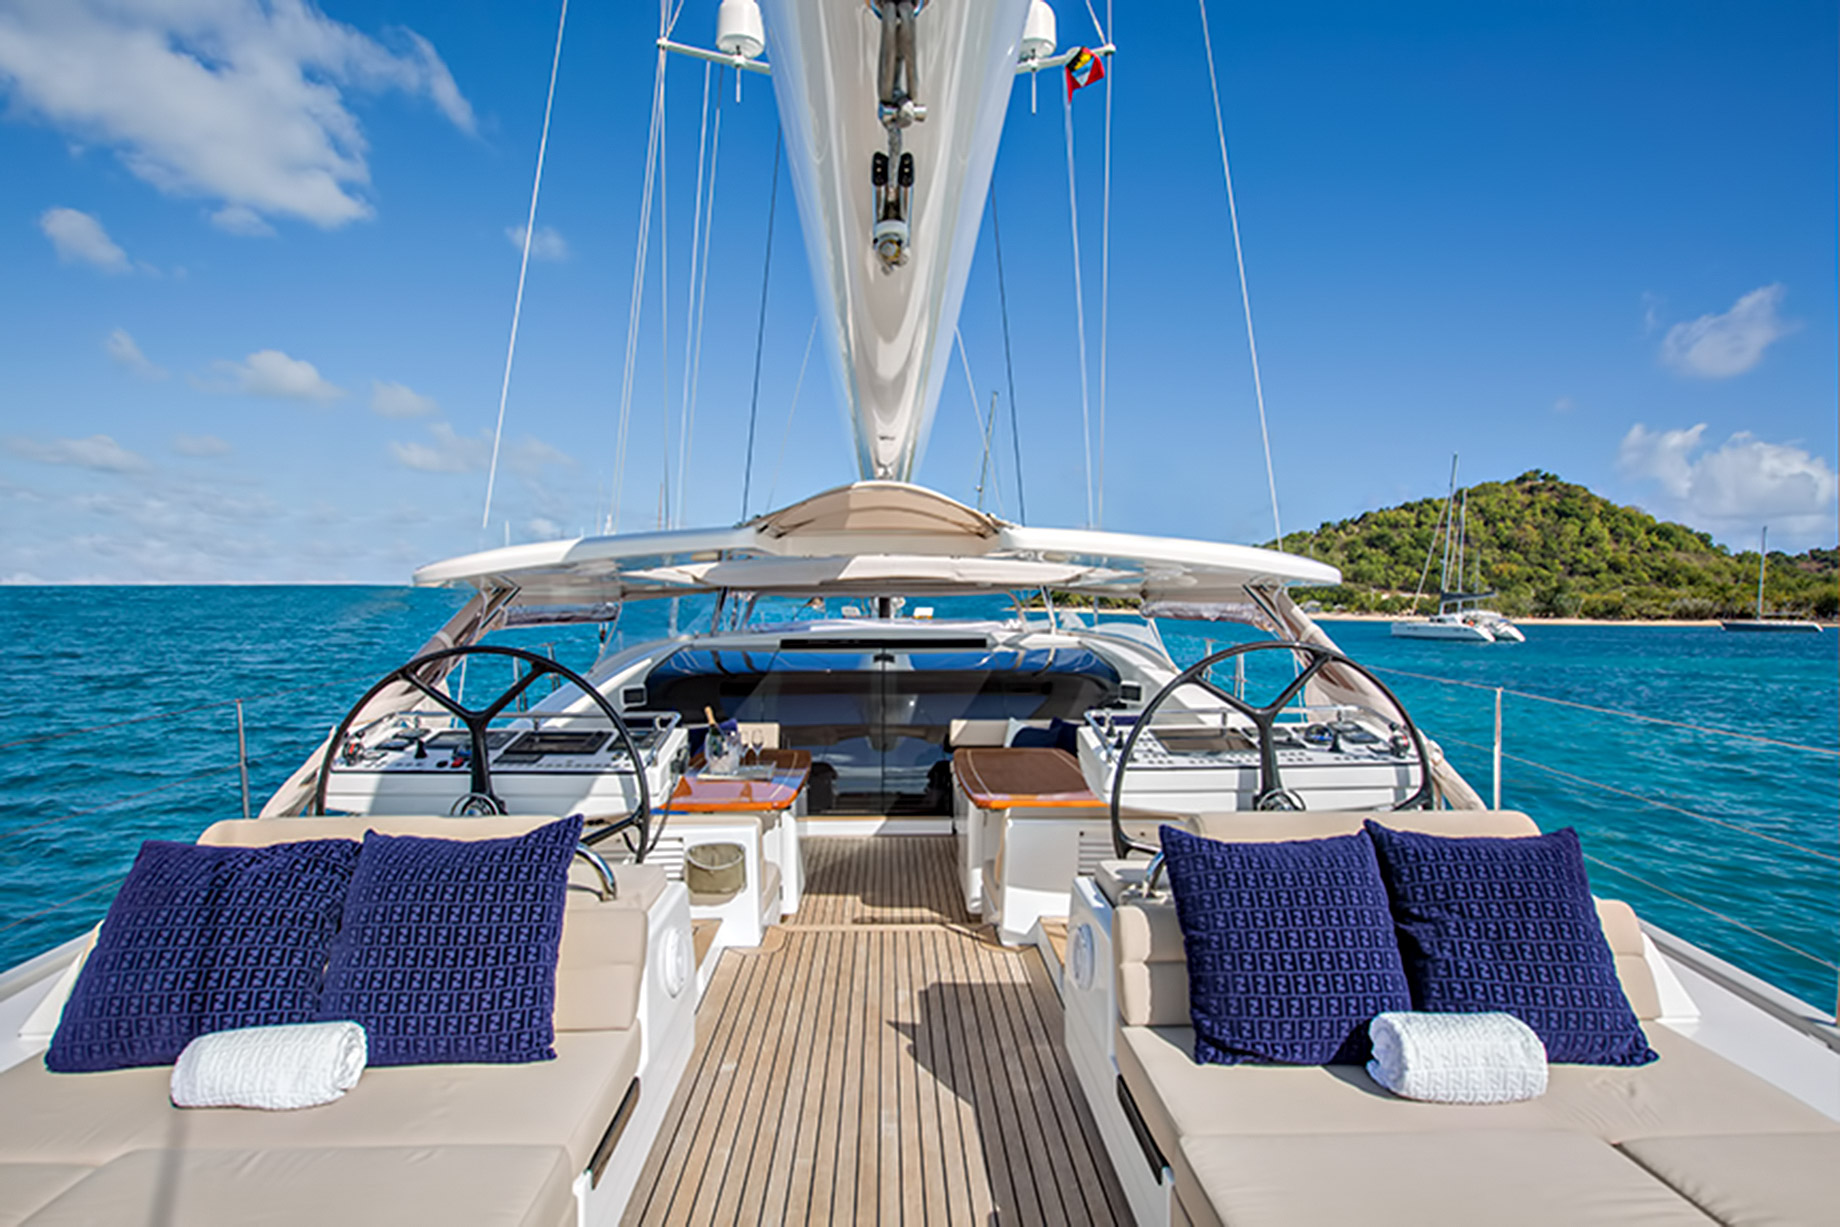 Spacious Deck Area - Oyster 100 Penelope - Step Inside A Luxury British Sailing Yacht